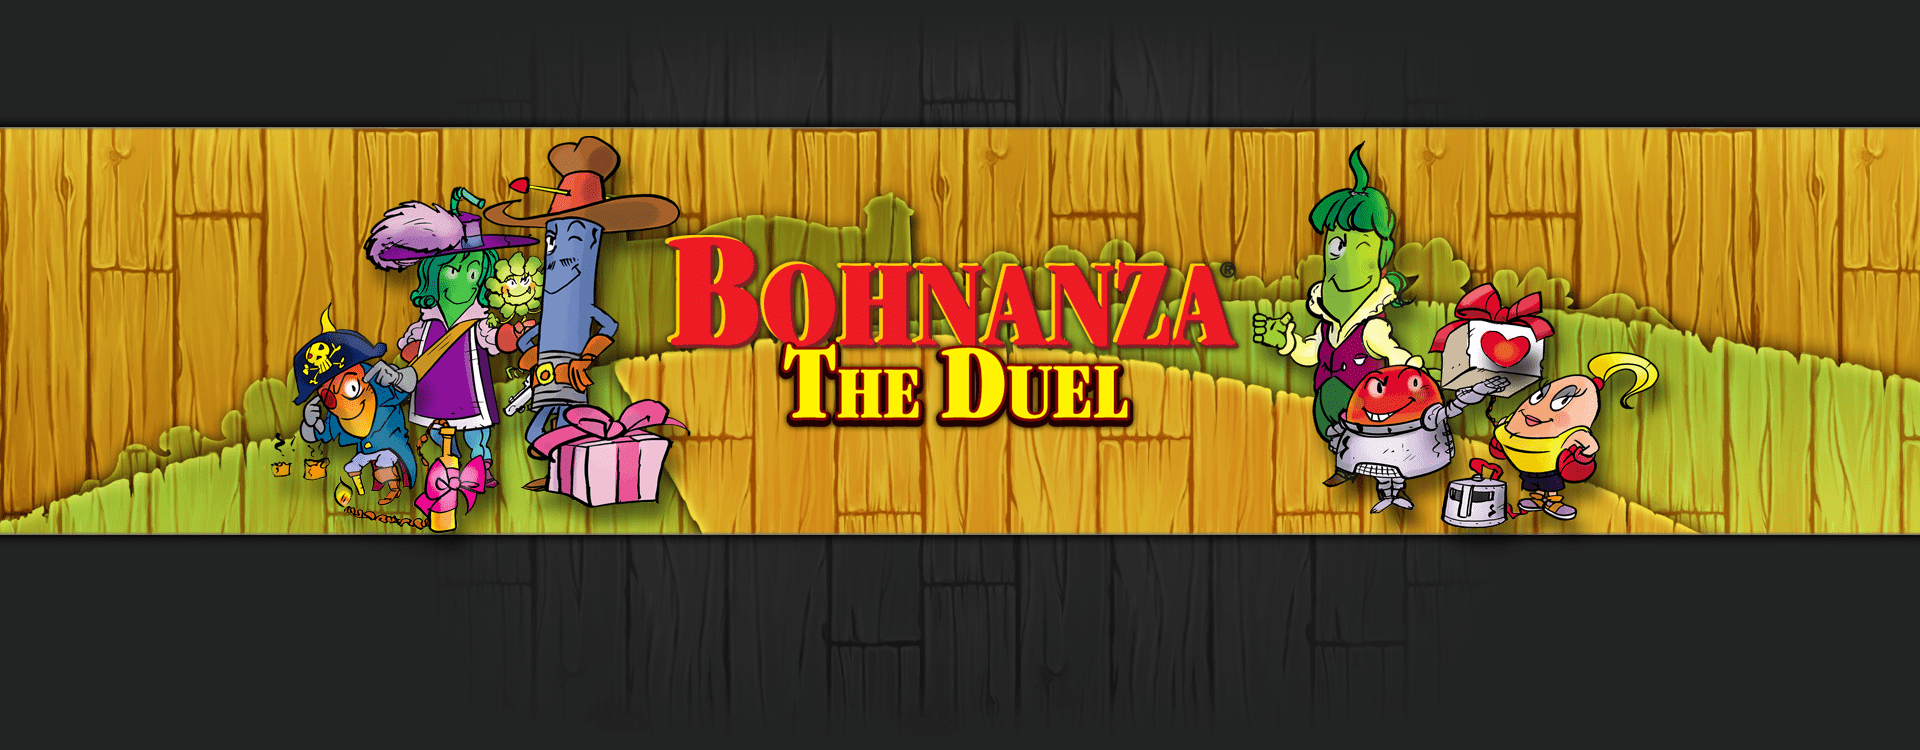 Bohnanza The Duel header image (2 player card game)